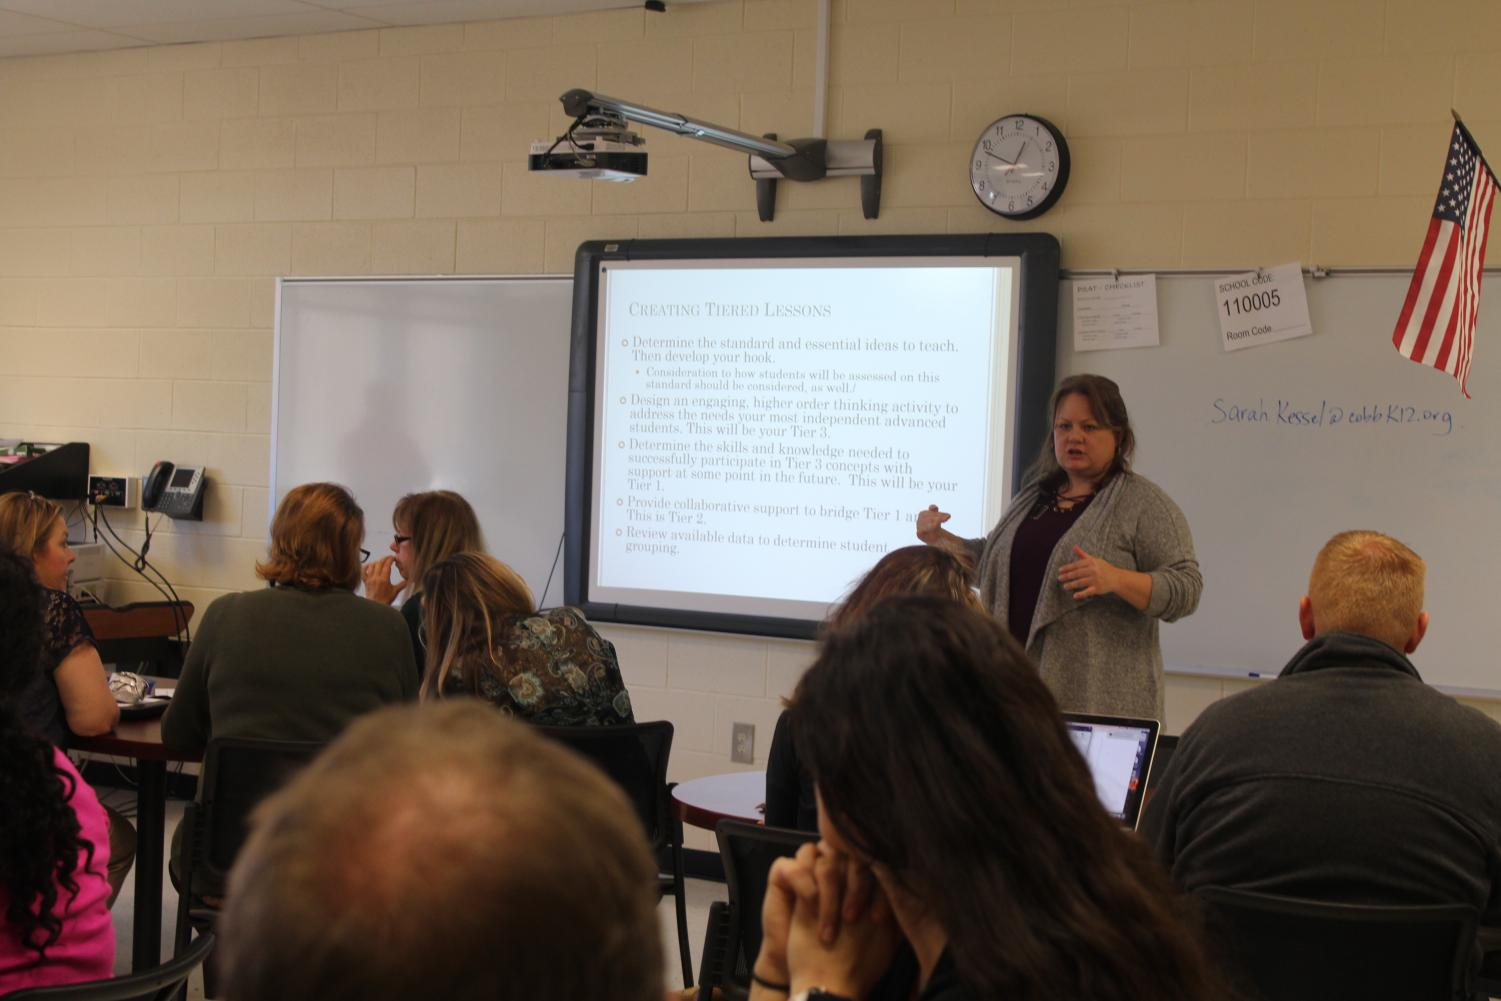 """Today, teachers attended a presentation by Cobb County employee Sarah Kessel and ninth grade literature teacher, Laura Smith. """"The meeting was about different ways to teach advanced students who may already understand the material better than others. Kessel and Smith gave examples of different methods to help these students learn, without wasting time on knowledge they already acquired,"""" said math teacher, Brenda Slater."""